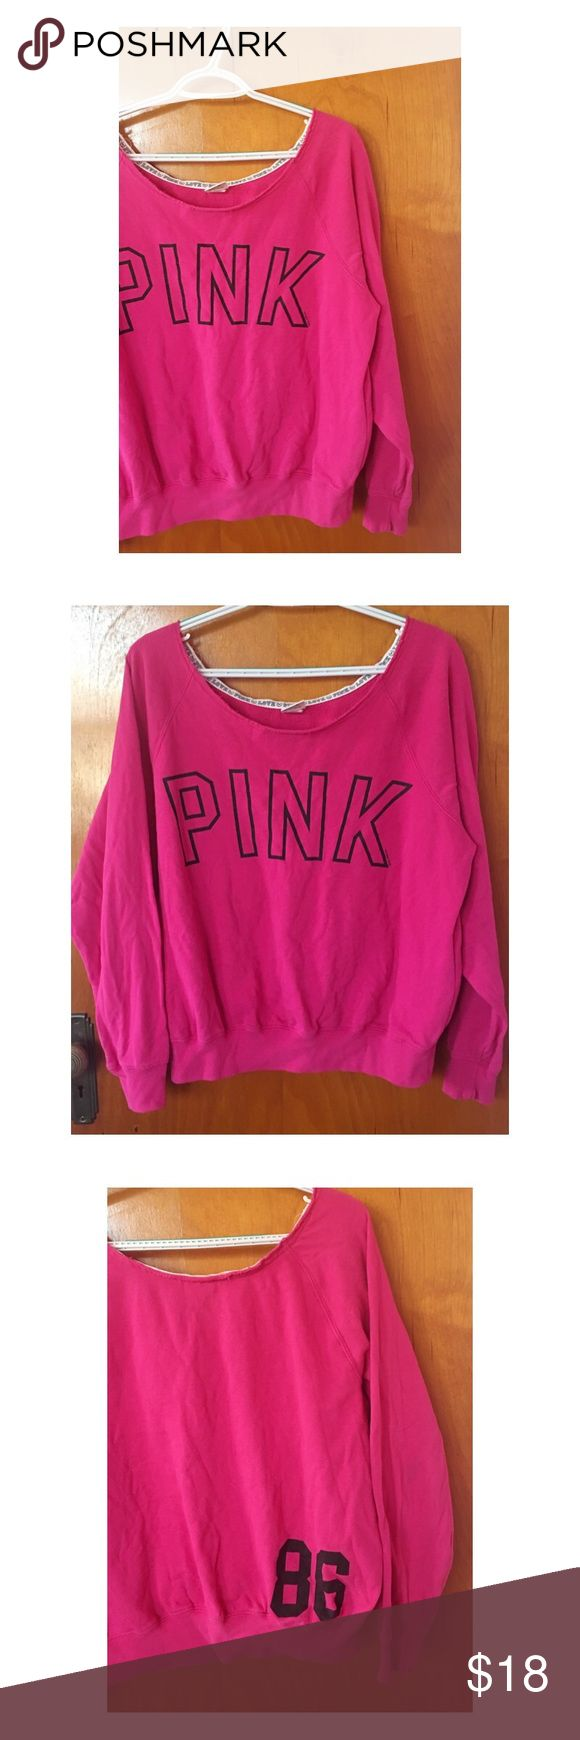 Victoria's Secret PINK Sweatshirt This Victoria's Secret PINK Sweatshirt is in great condition and a size Medium. It is long sleeved and slouchy style. PINK Victoria's Secret Tops Sweatshirts & Hoodies